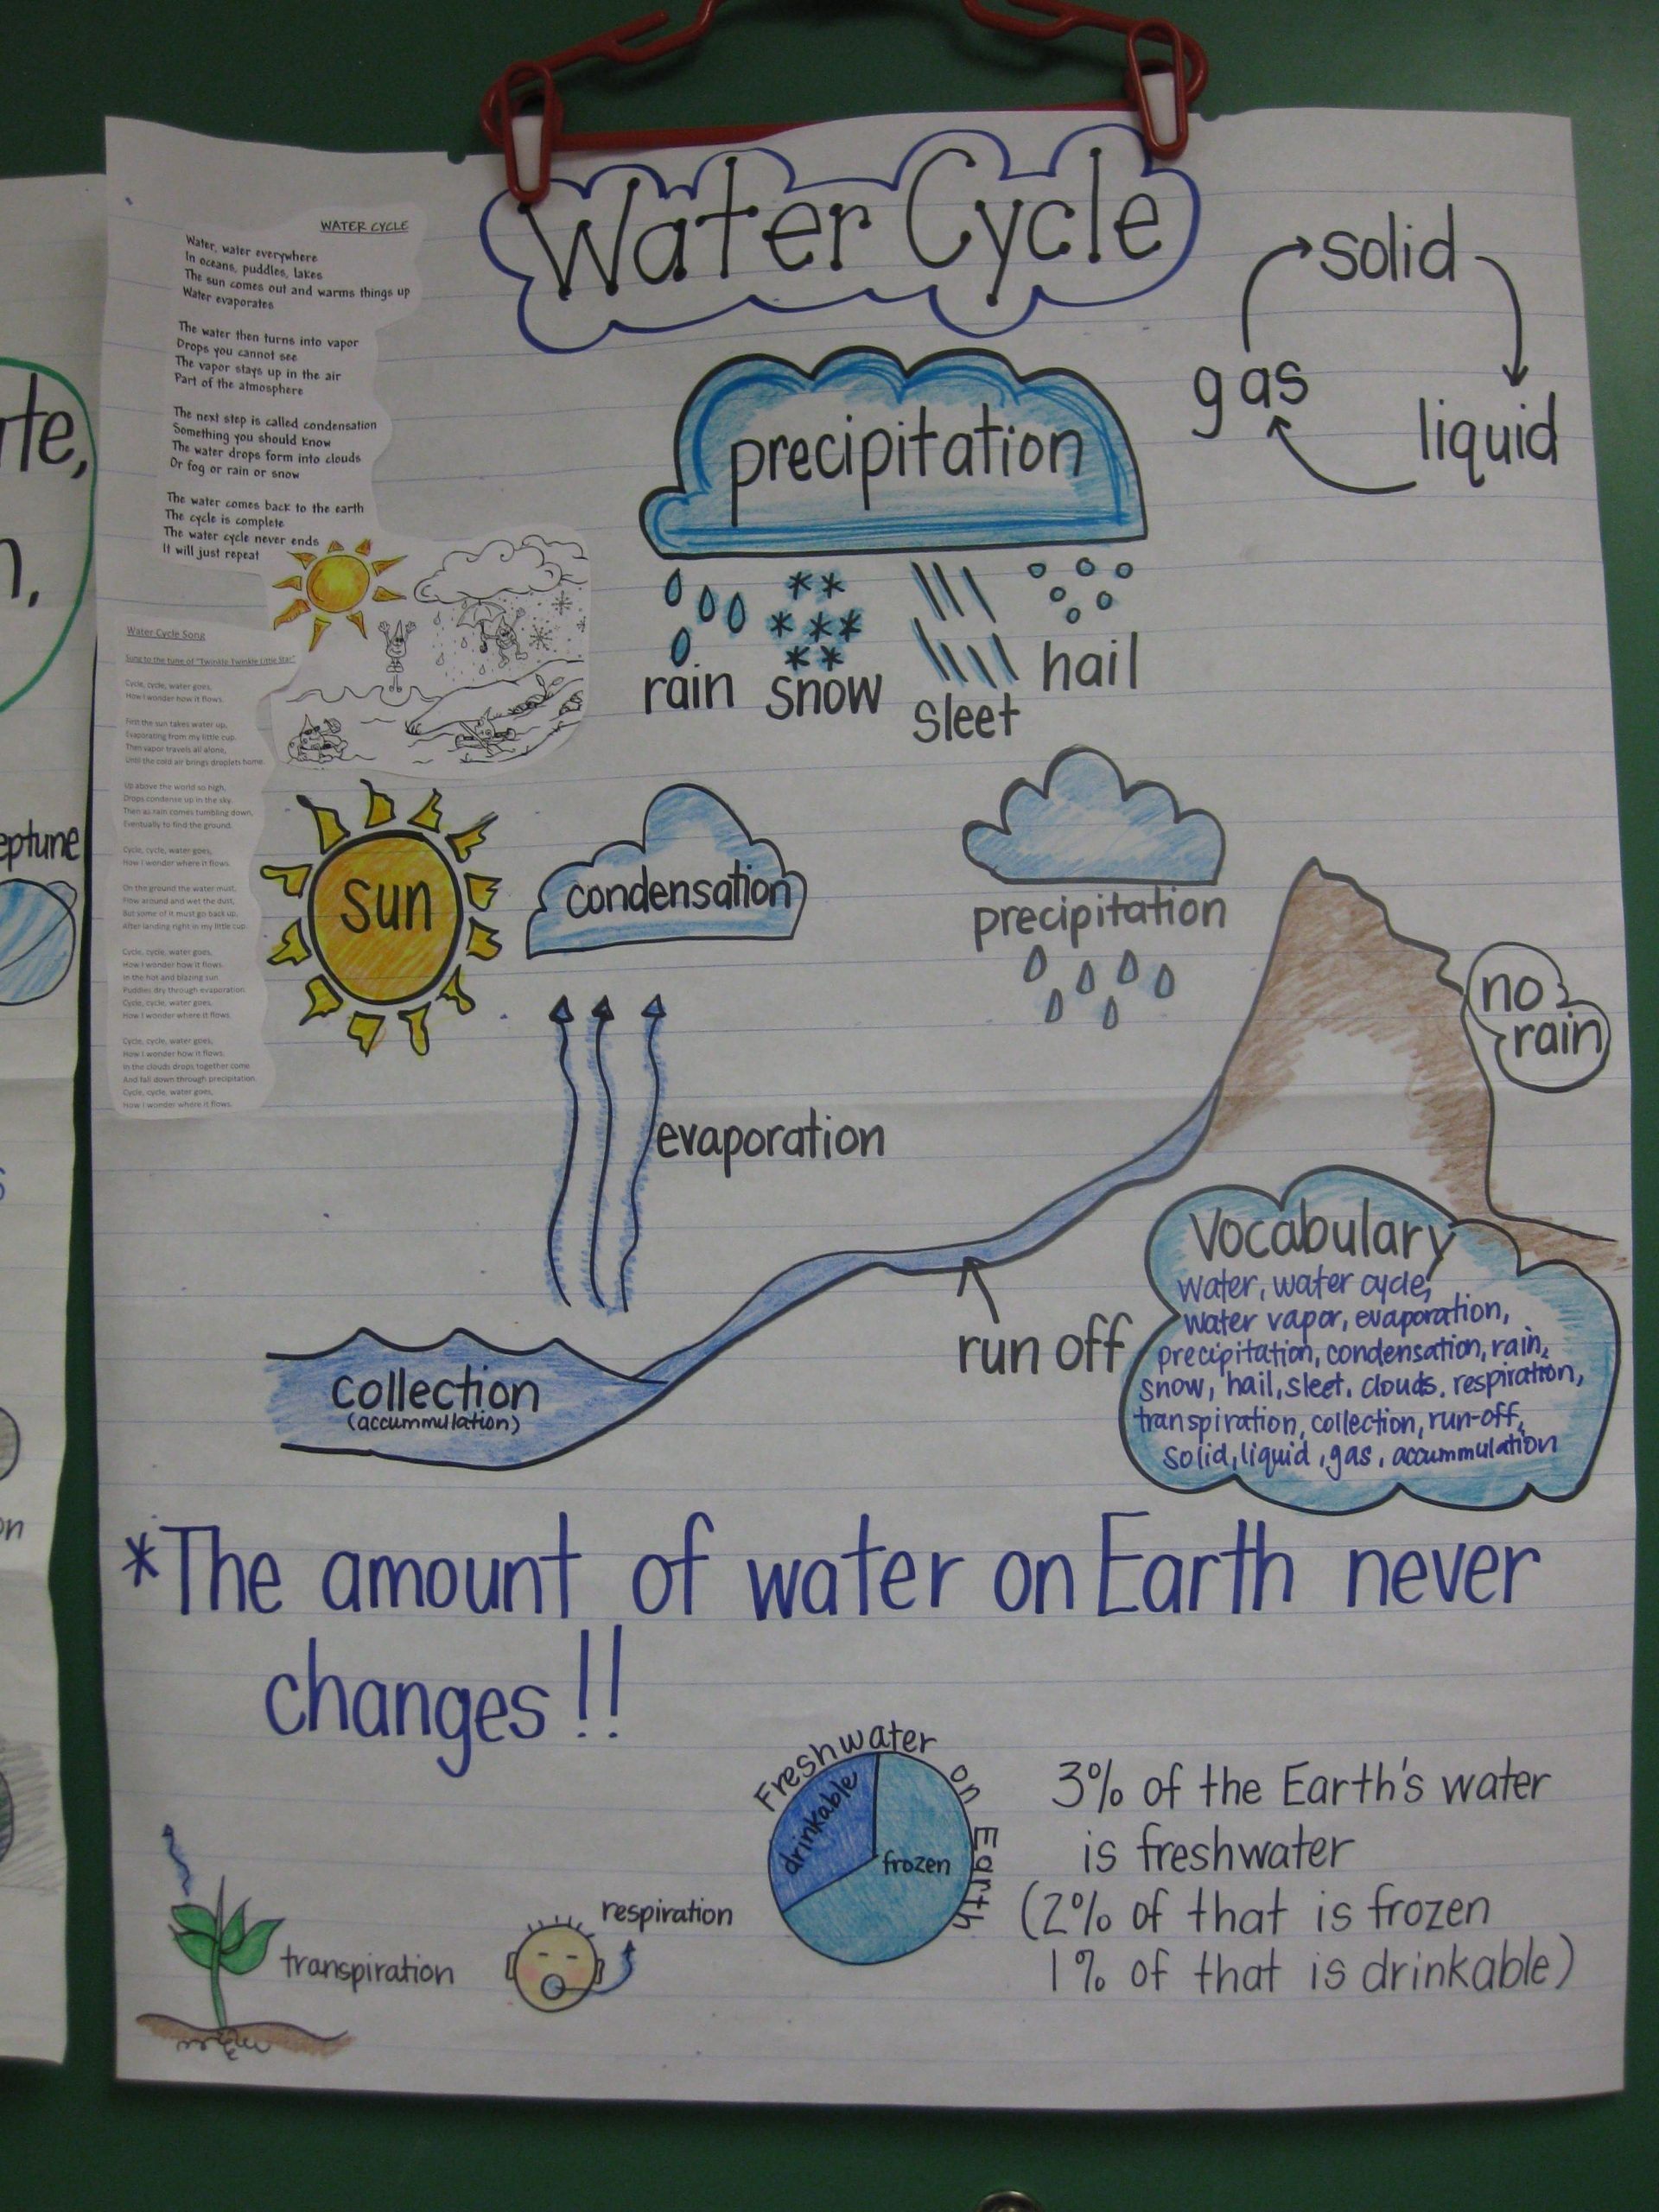 Water Cycle Worksheet Middle School Science Anchor Charts Science Chart Elementary Science